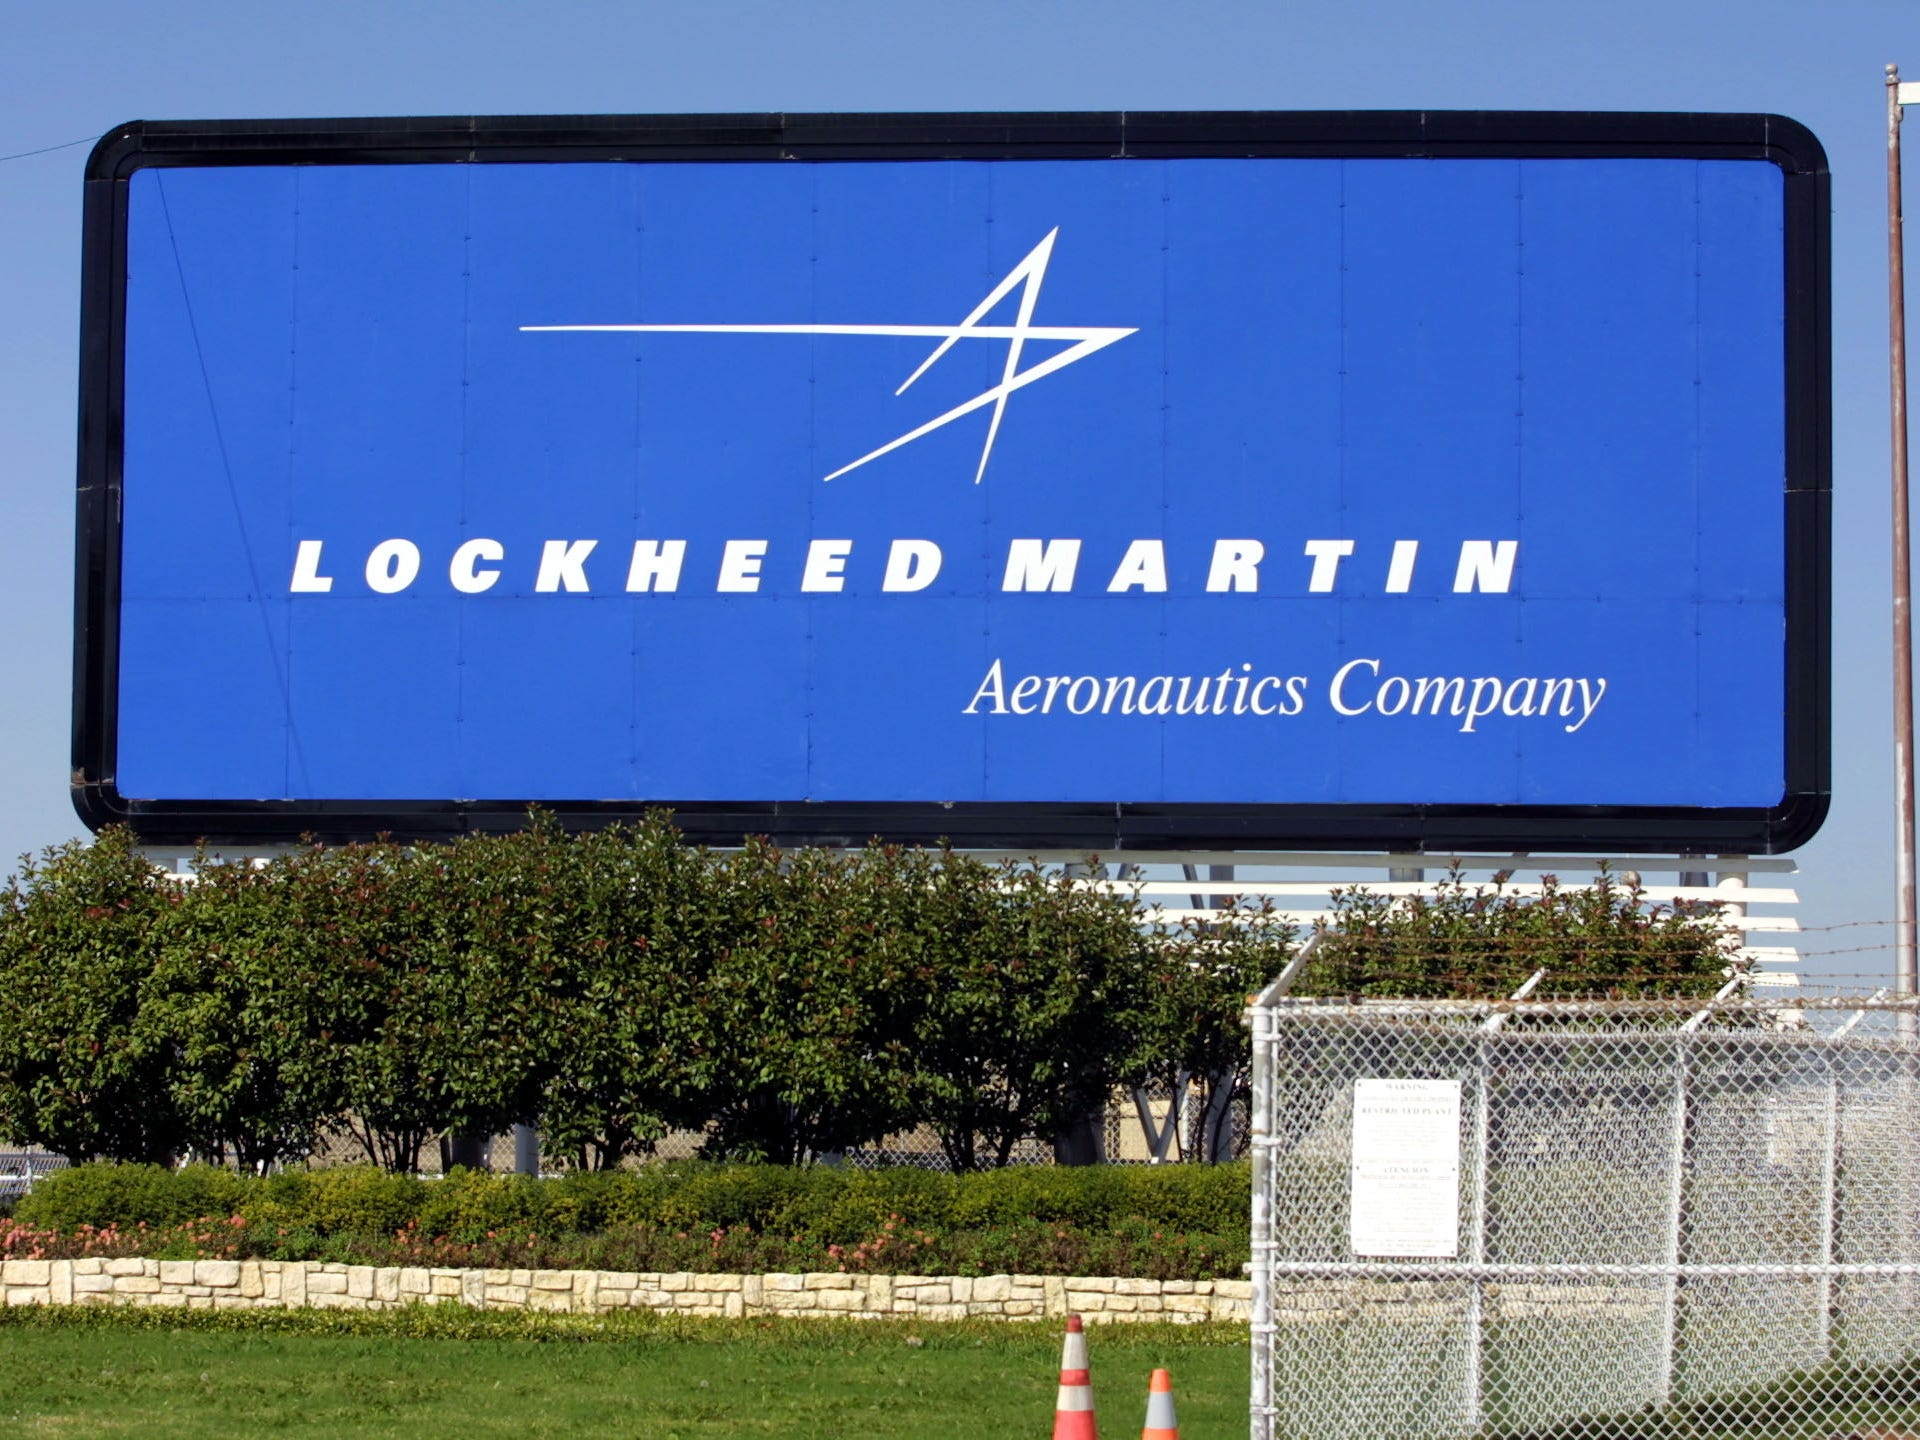 Lockheed Martin, hiring 130. The defense manufacturer has openings ranging from material handler to systems administrator. More info:lockheedmartinjobs.com.